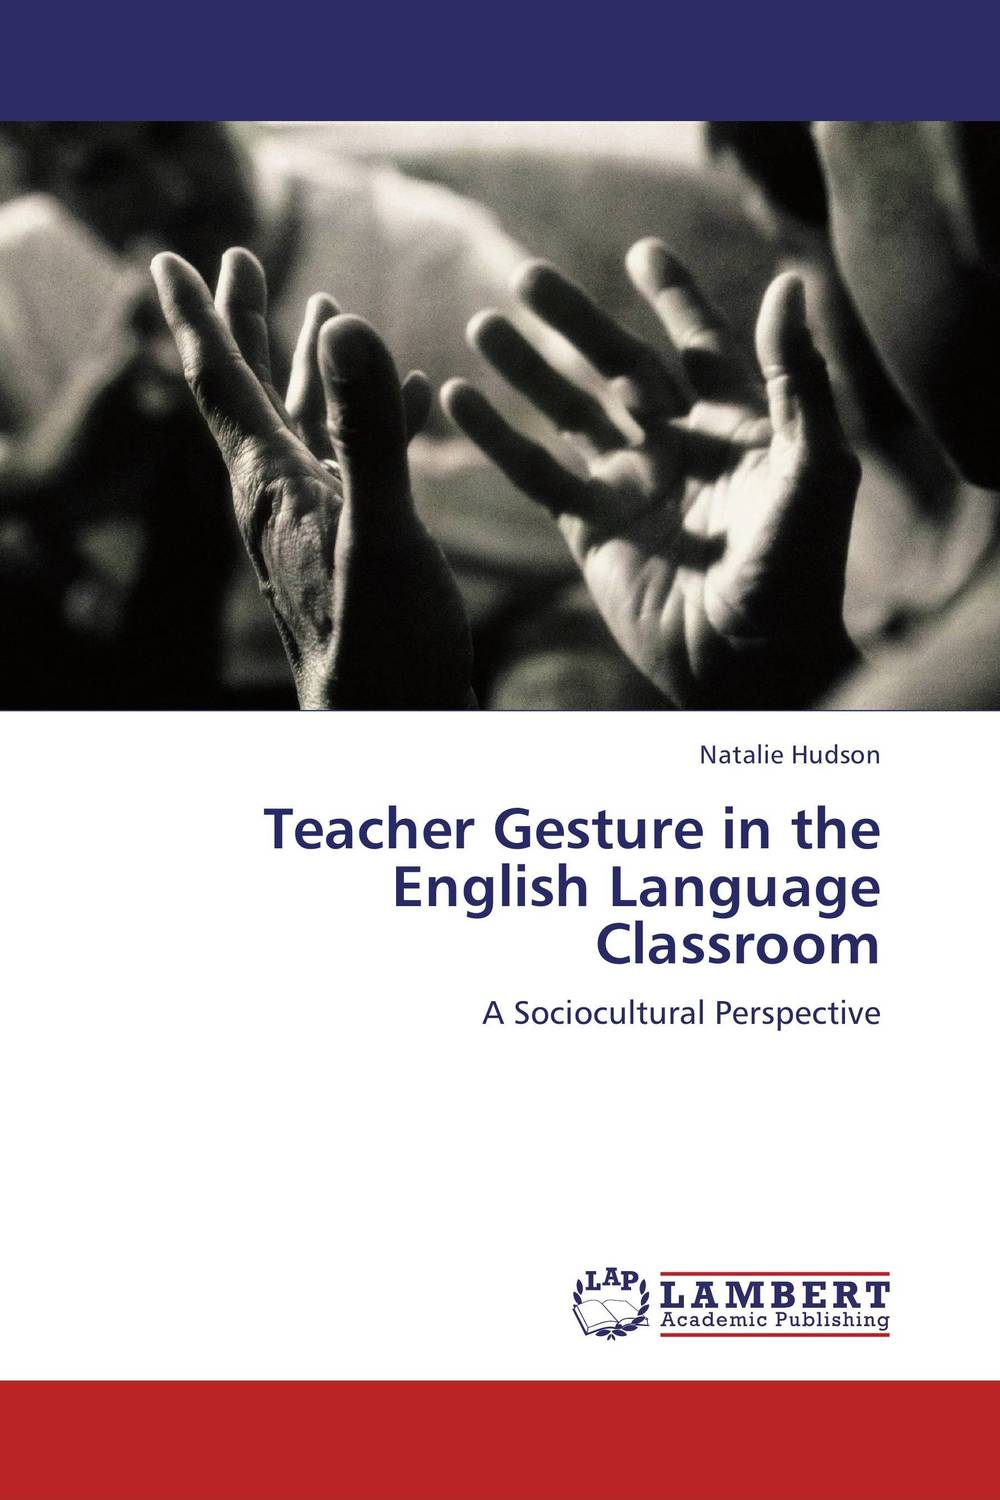 Teacher Gesture in the English Language Classroom